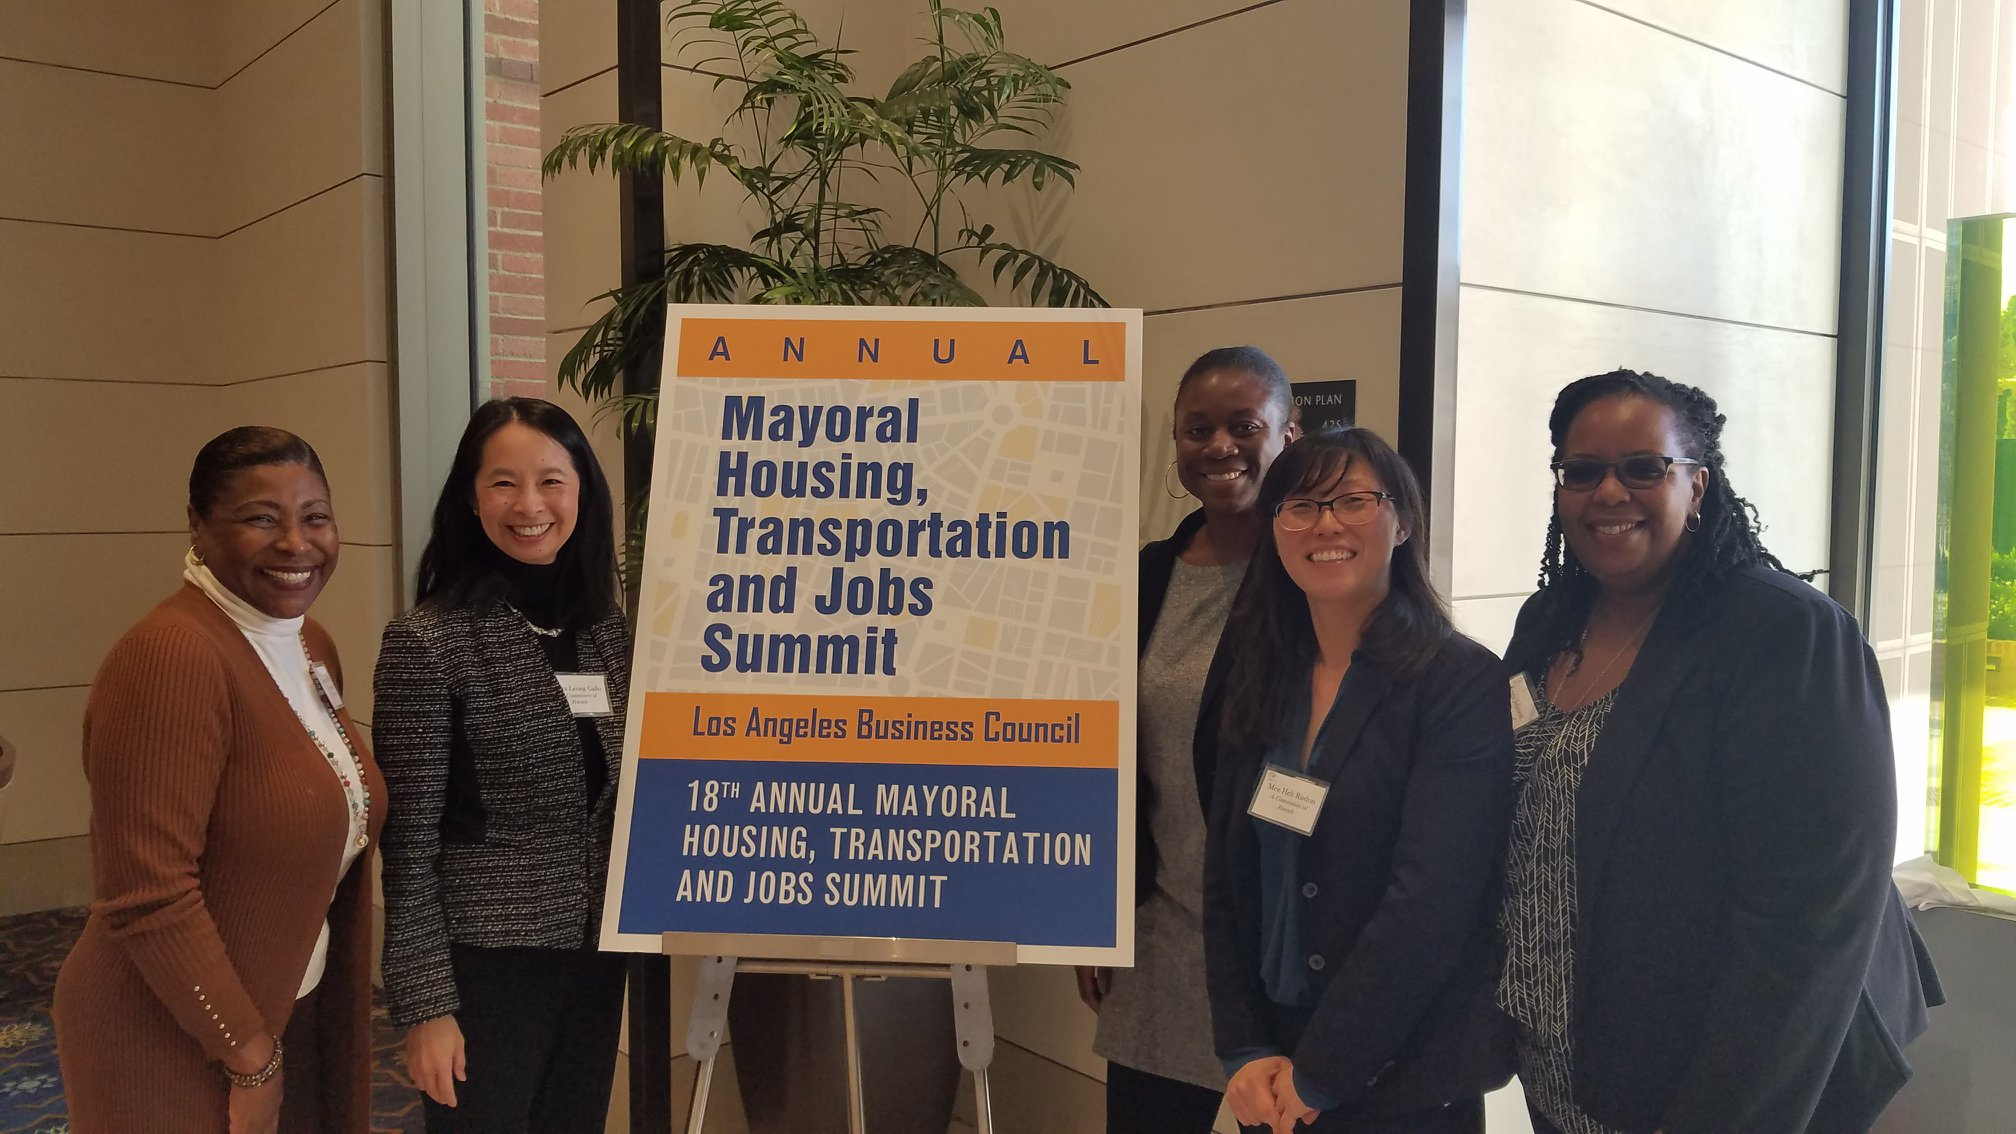 18th annual mayoral housing, transportation and jobs summit.